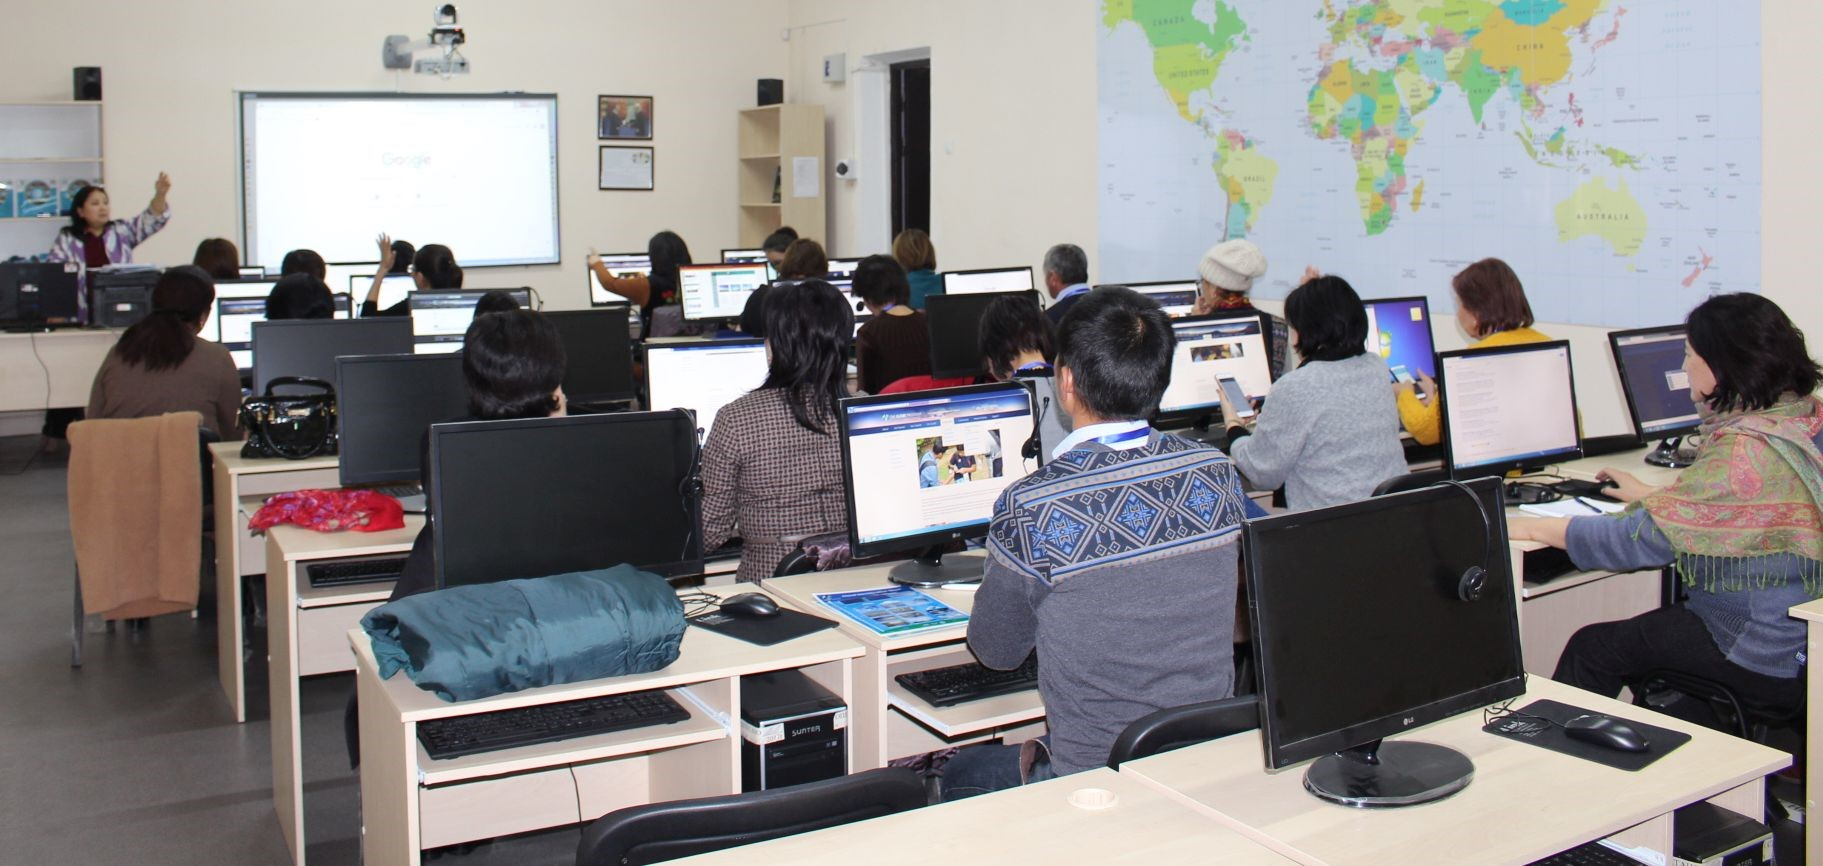 Participants in teacer training event in Kyrgyz Republic, February 2019.